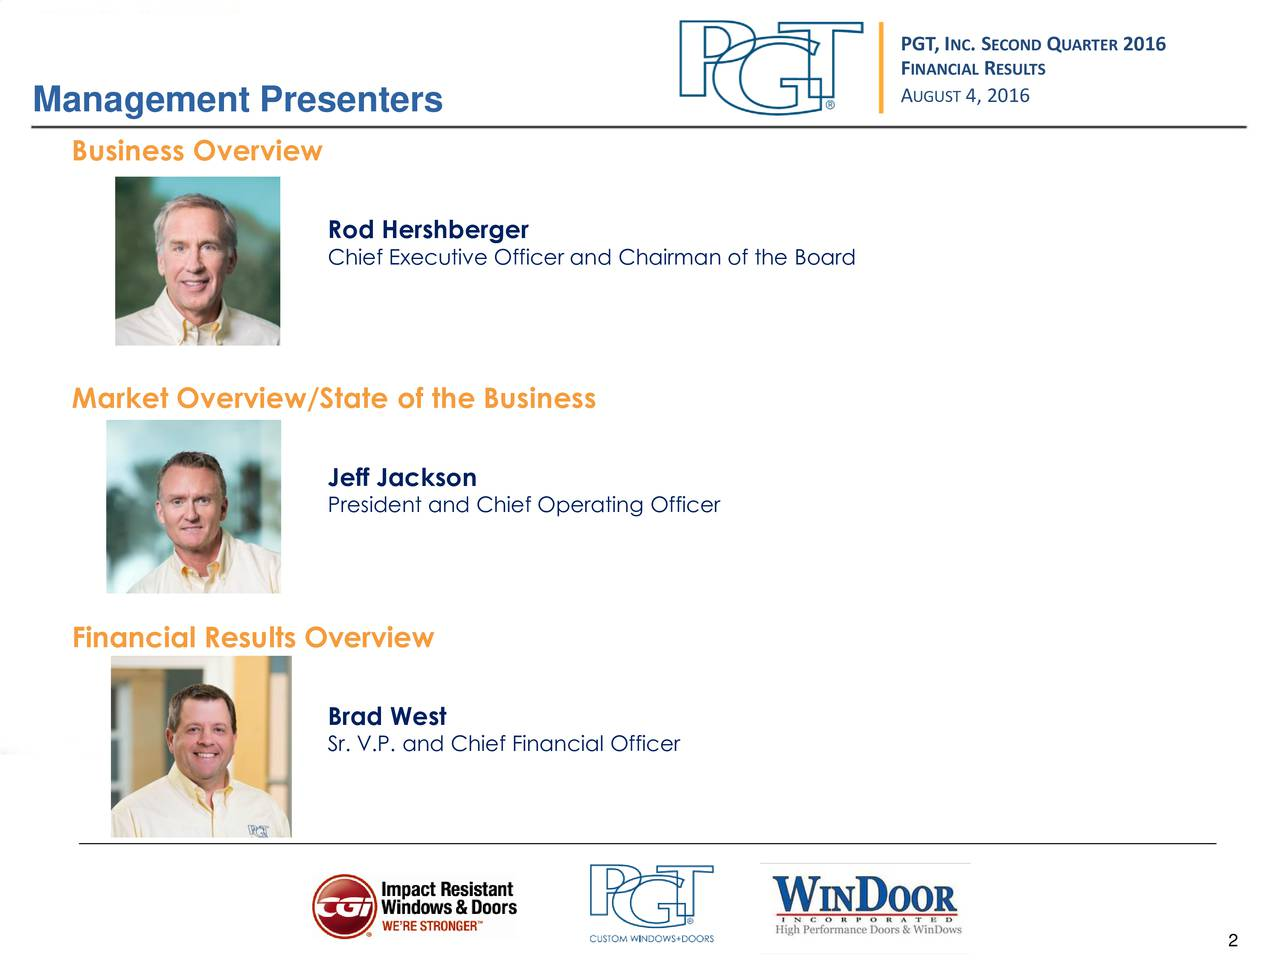 FINANCIRLESULTS Management Presenters AUGUST4, 2016 Business Overview Rod Hershberger Chief Executive Officer and Chairman of the Board Market Overview/State of the Business Jeff Jackson President and Chief Operating Officer Financial Results Overview Brad West Sr. V.P. and Chief Financial Officer 2 2